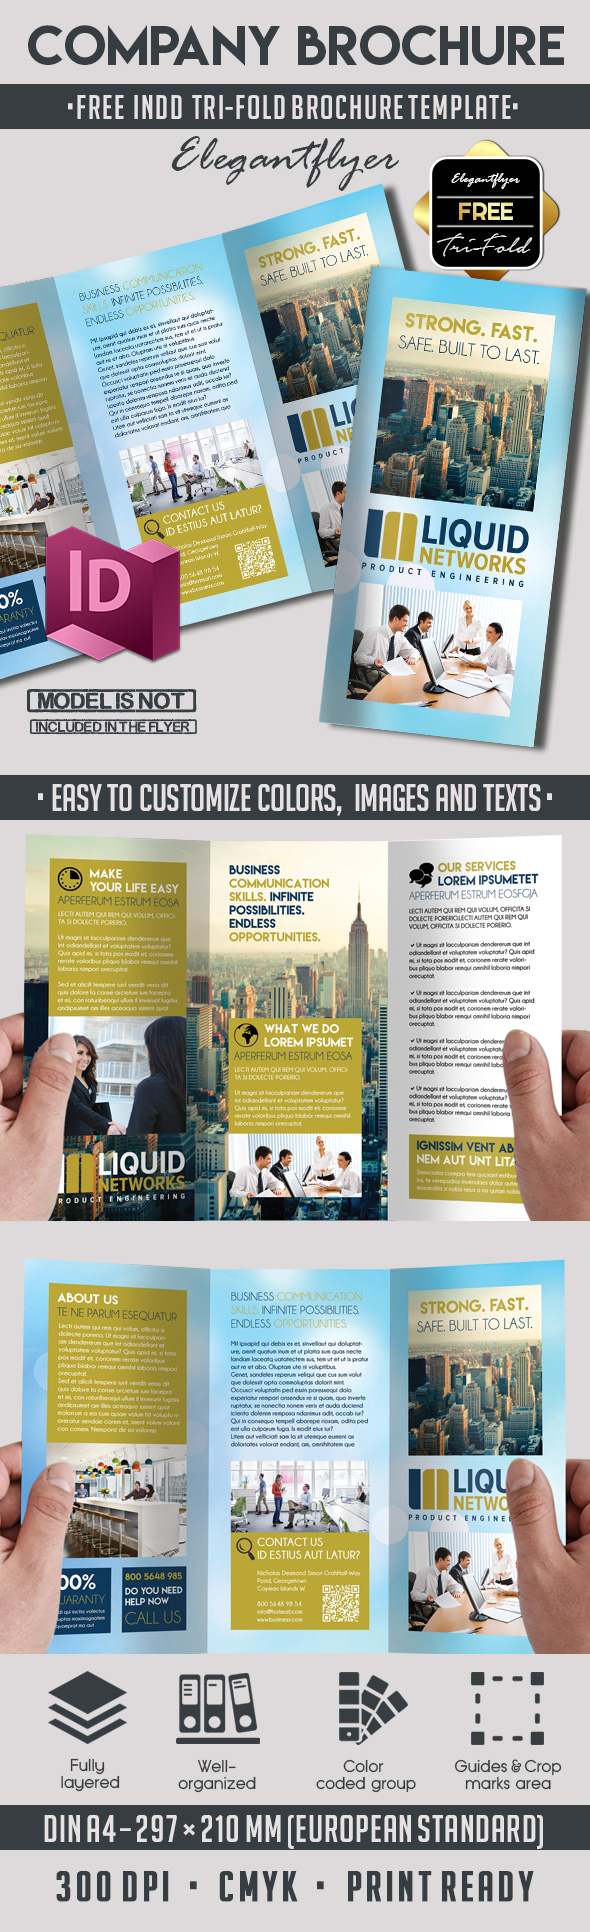 5 Ful Free Adobe Indesign Brochures Templates